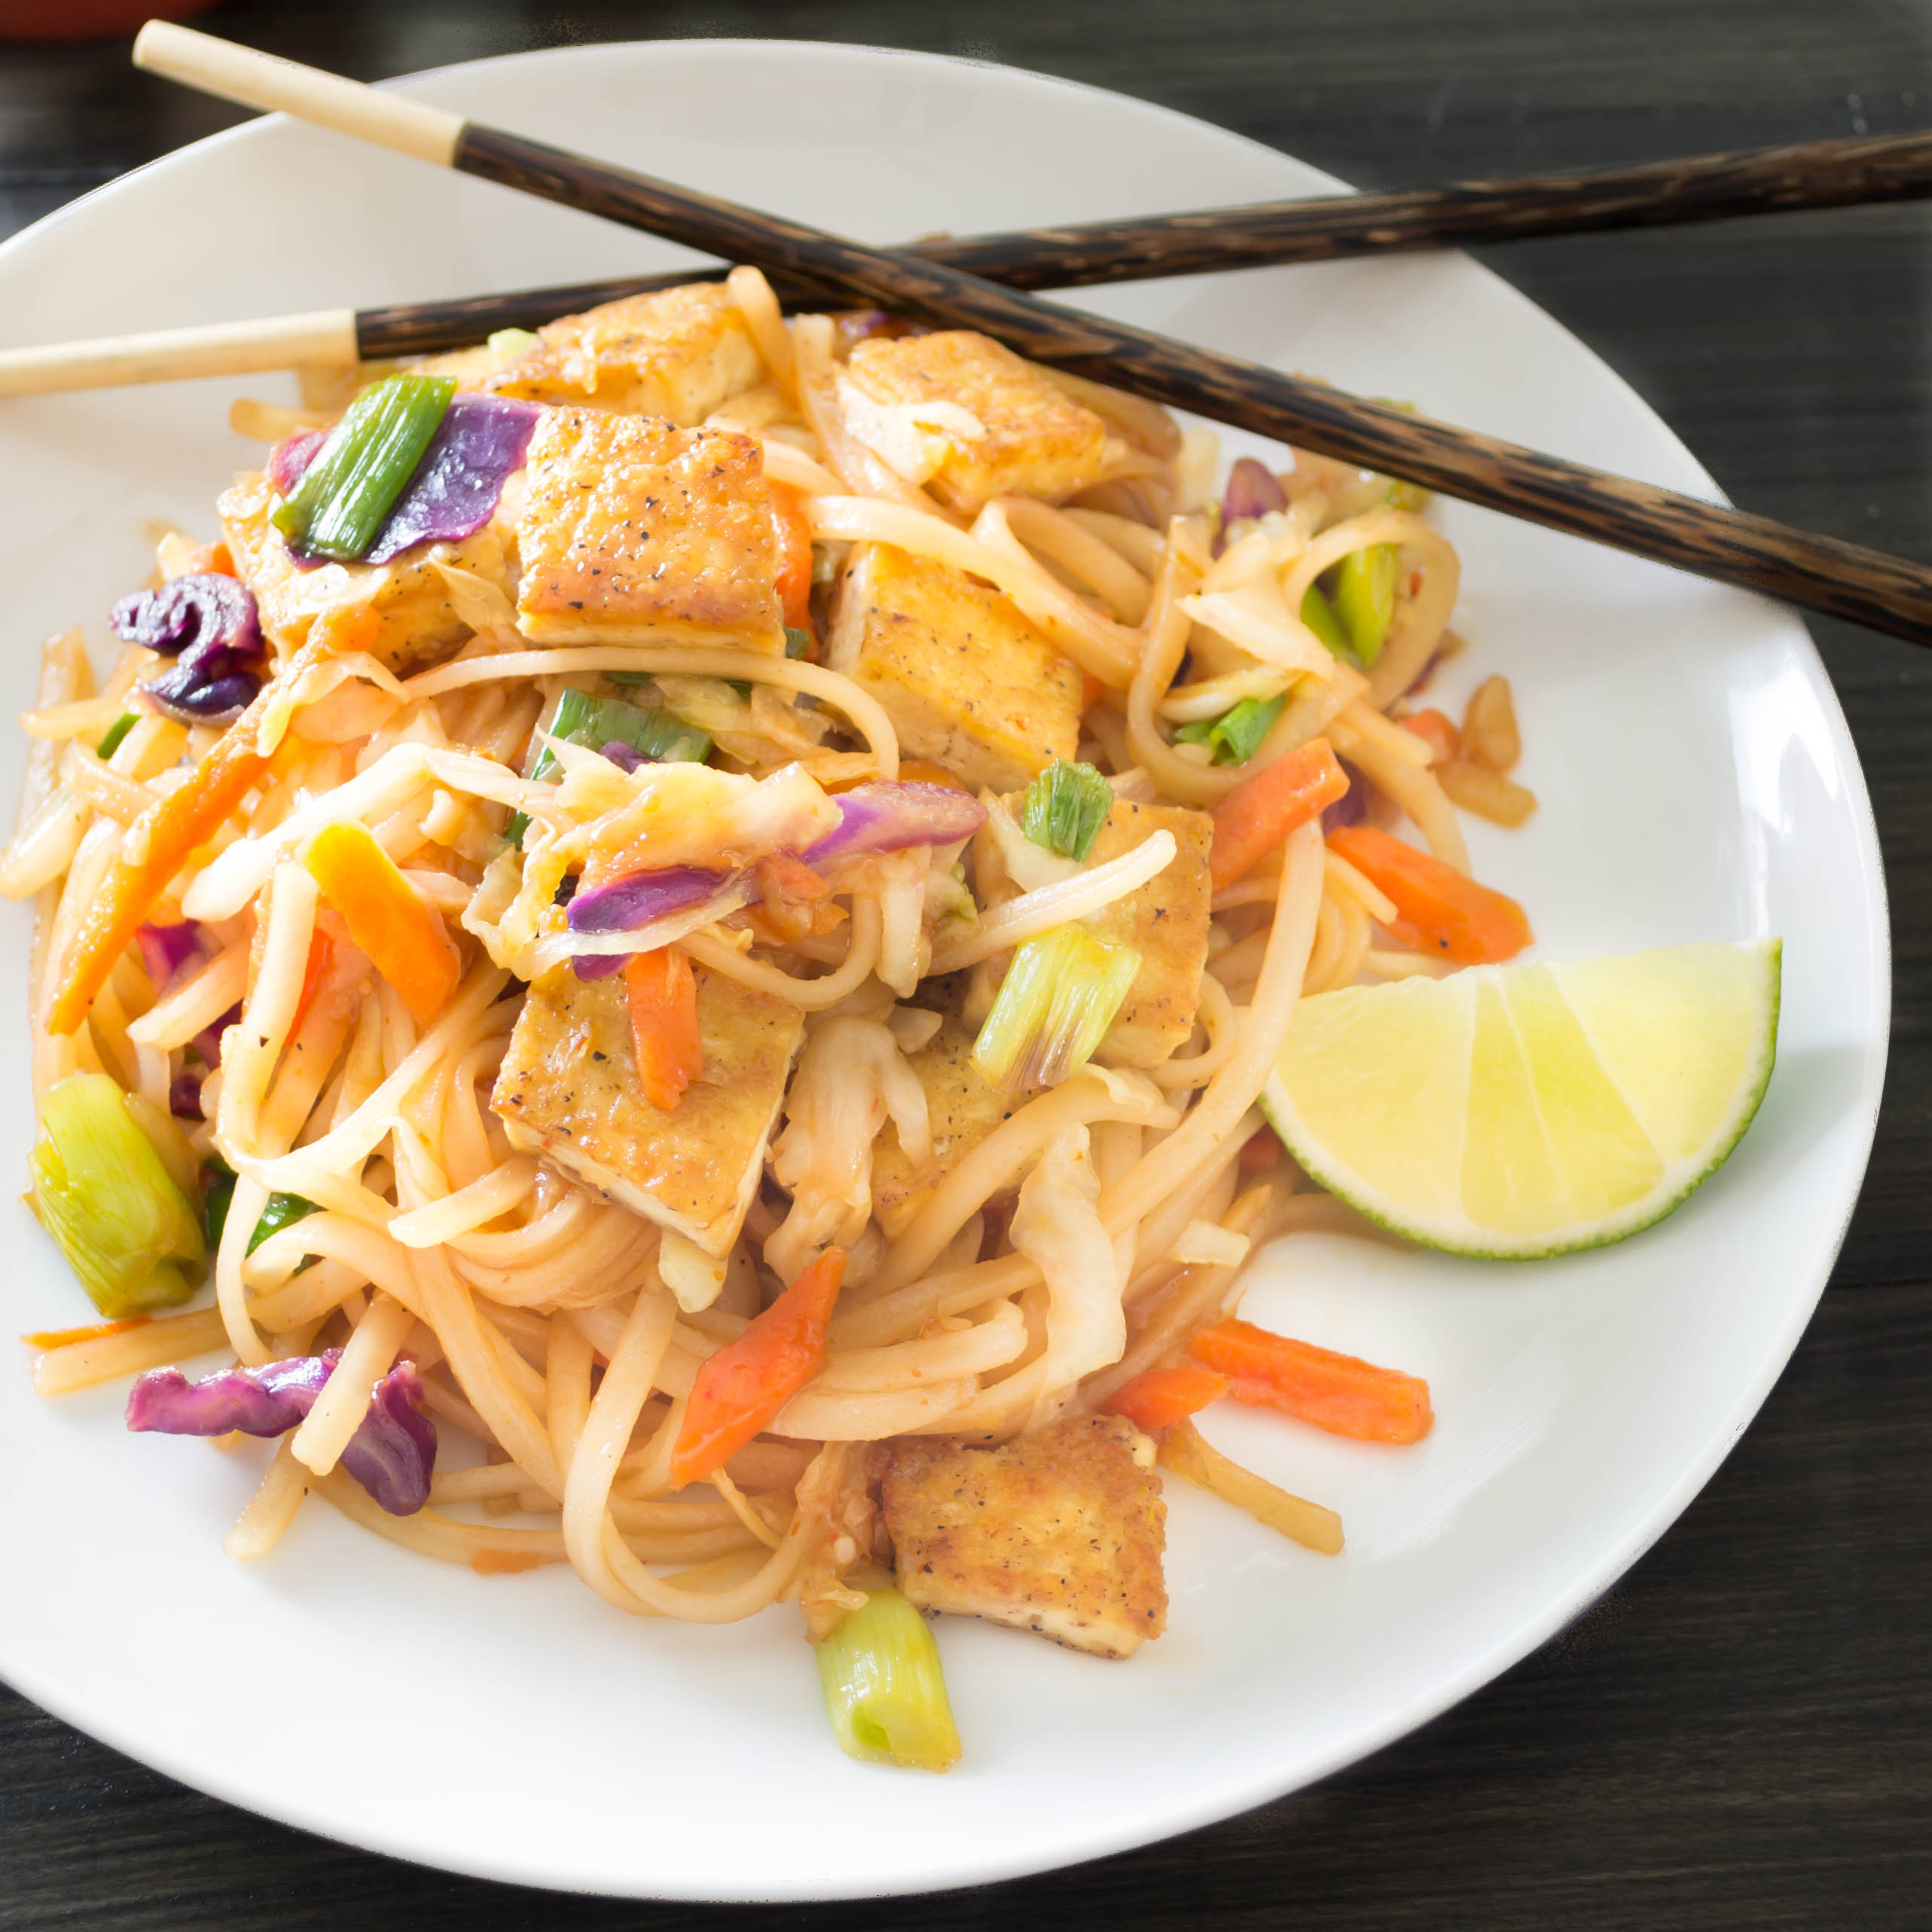 Spicy Asian Noodles...seared tofu and rice noodles coated in a ...